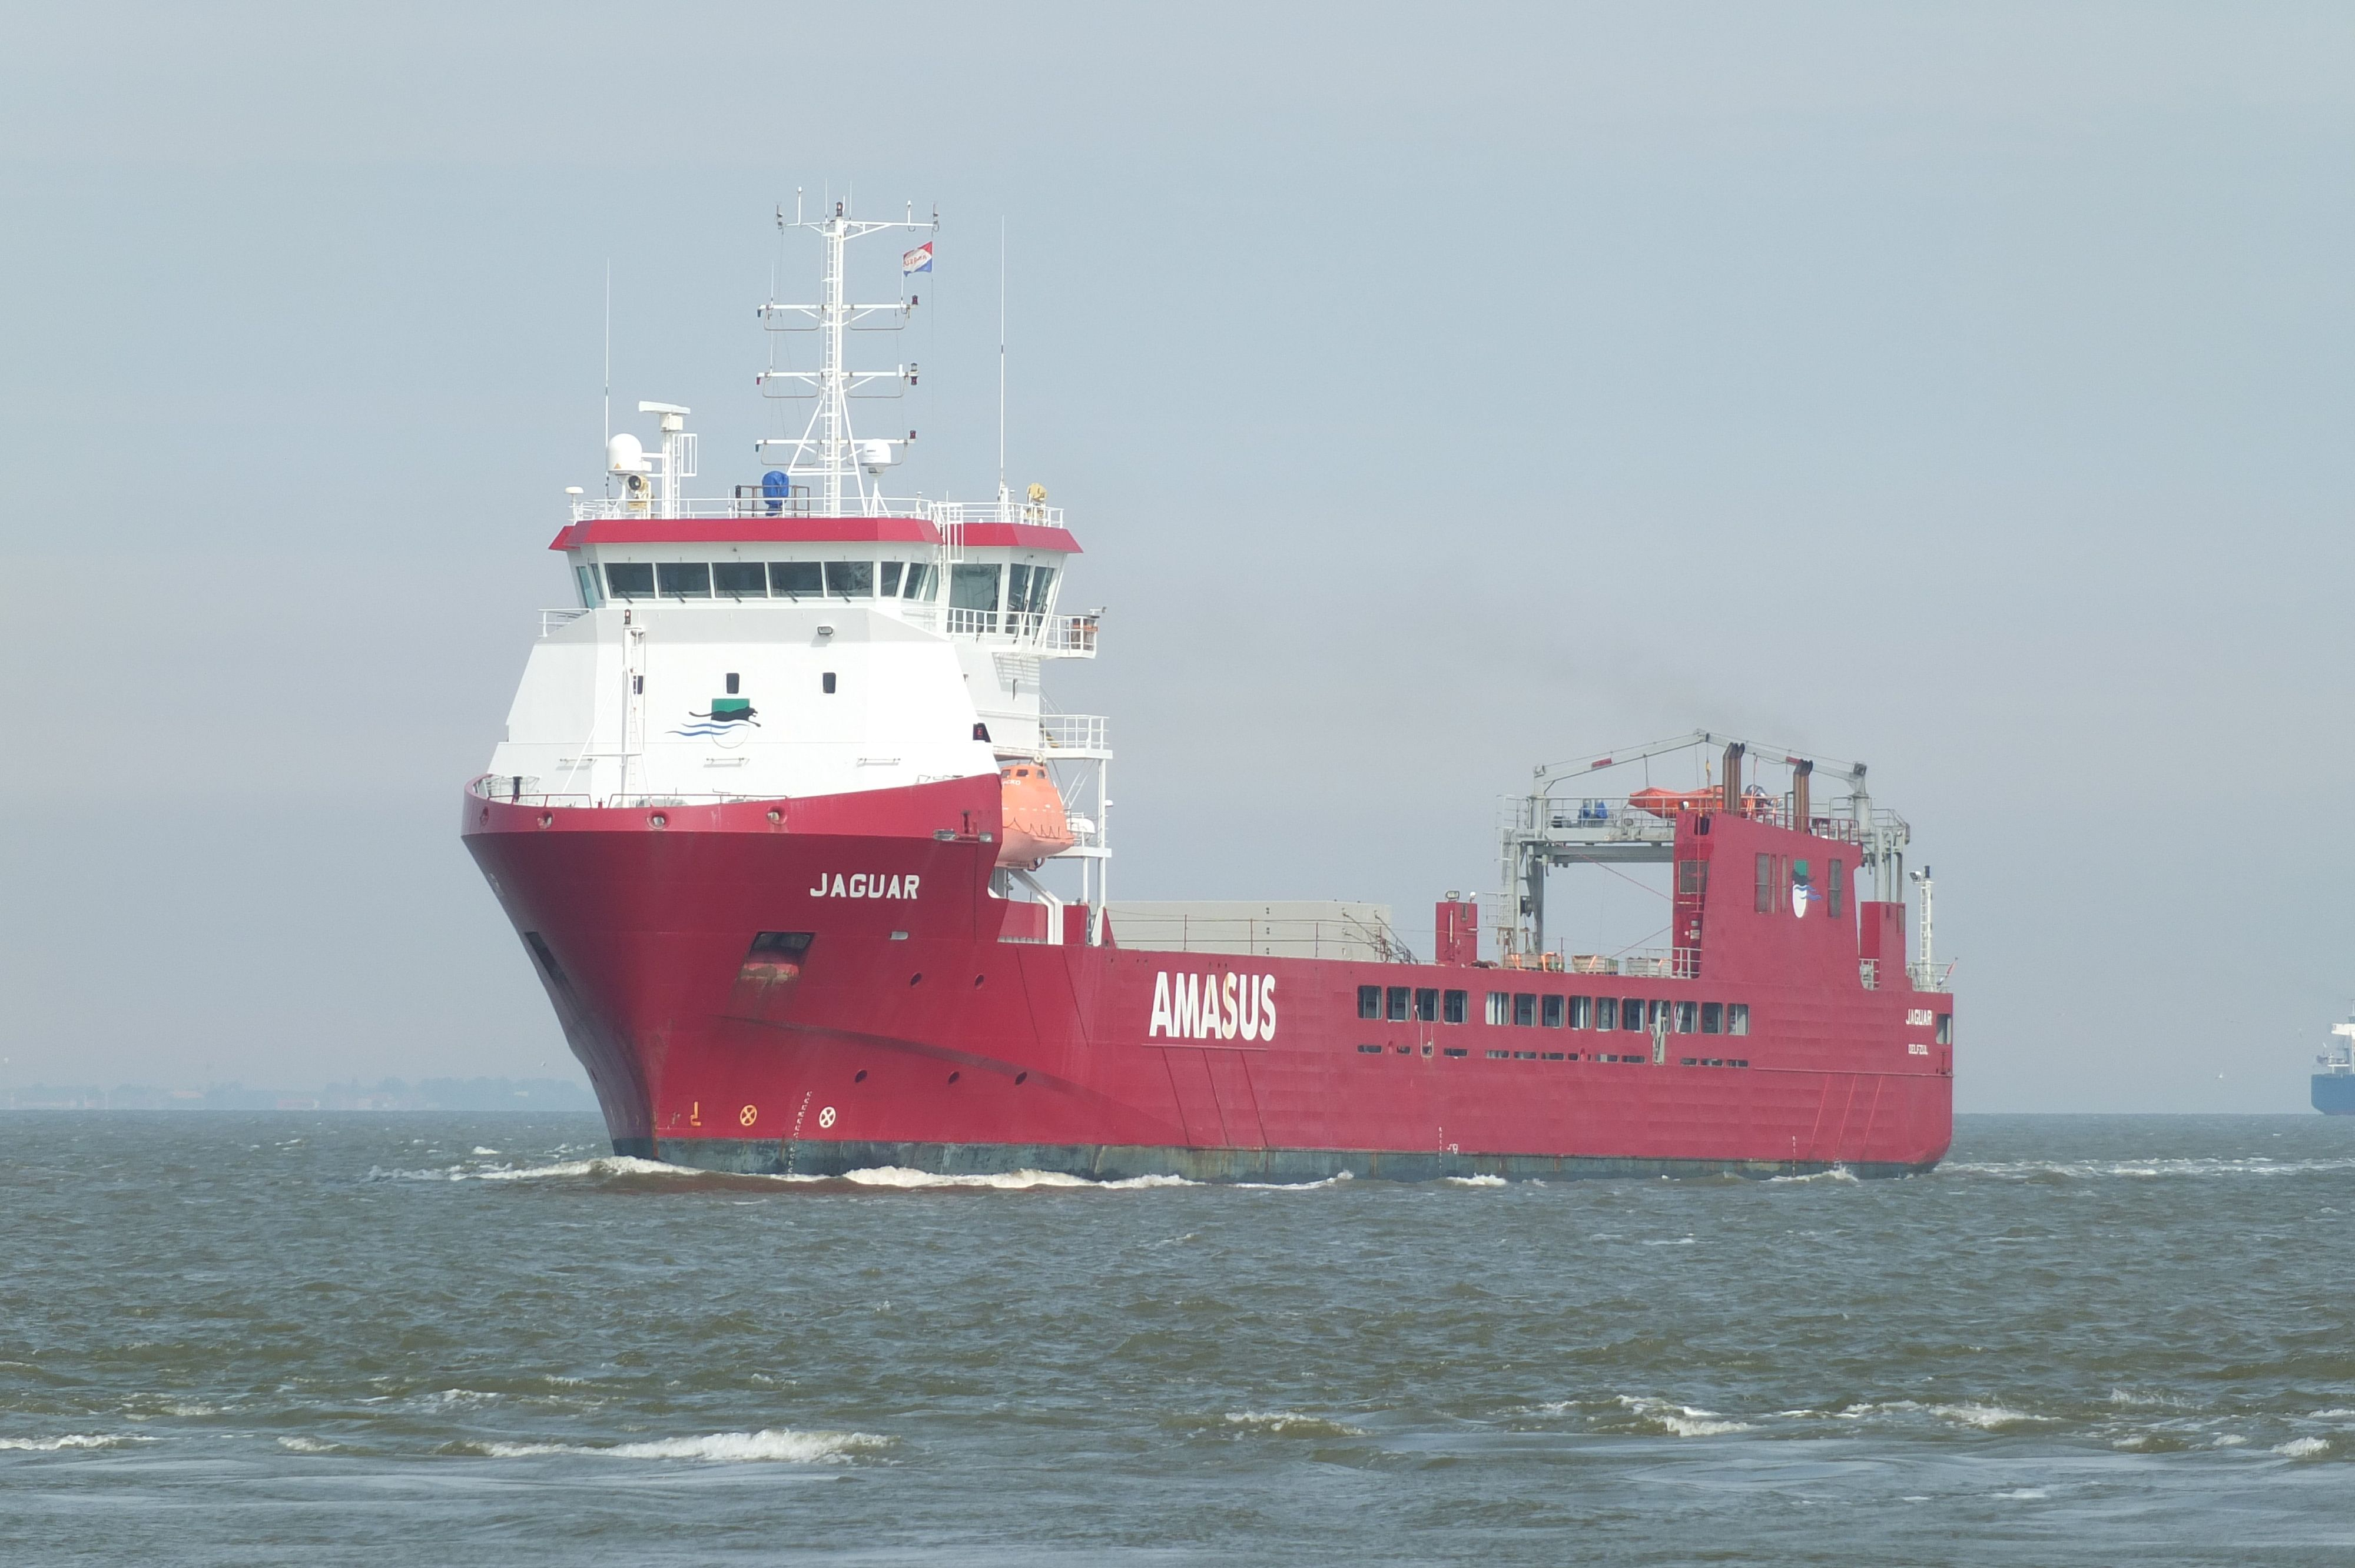 mv Jaguar spotted in Eemshaven